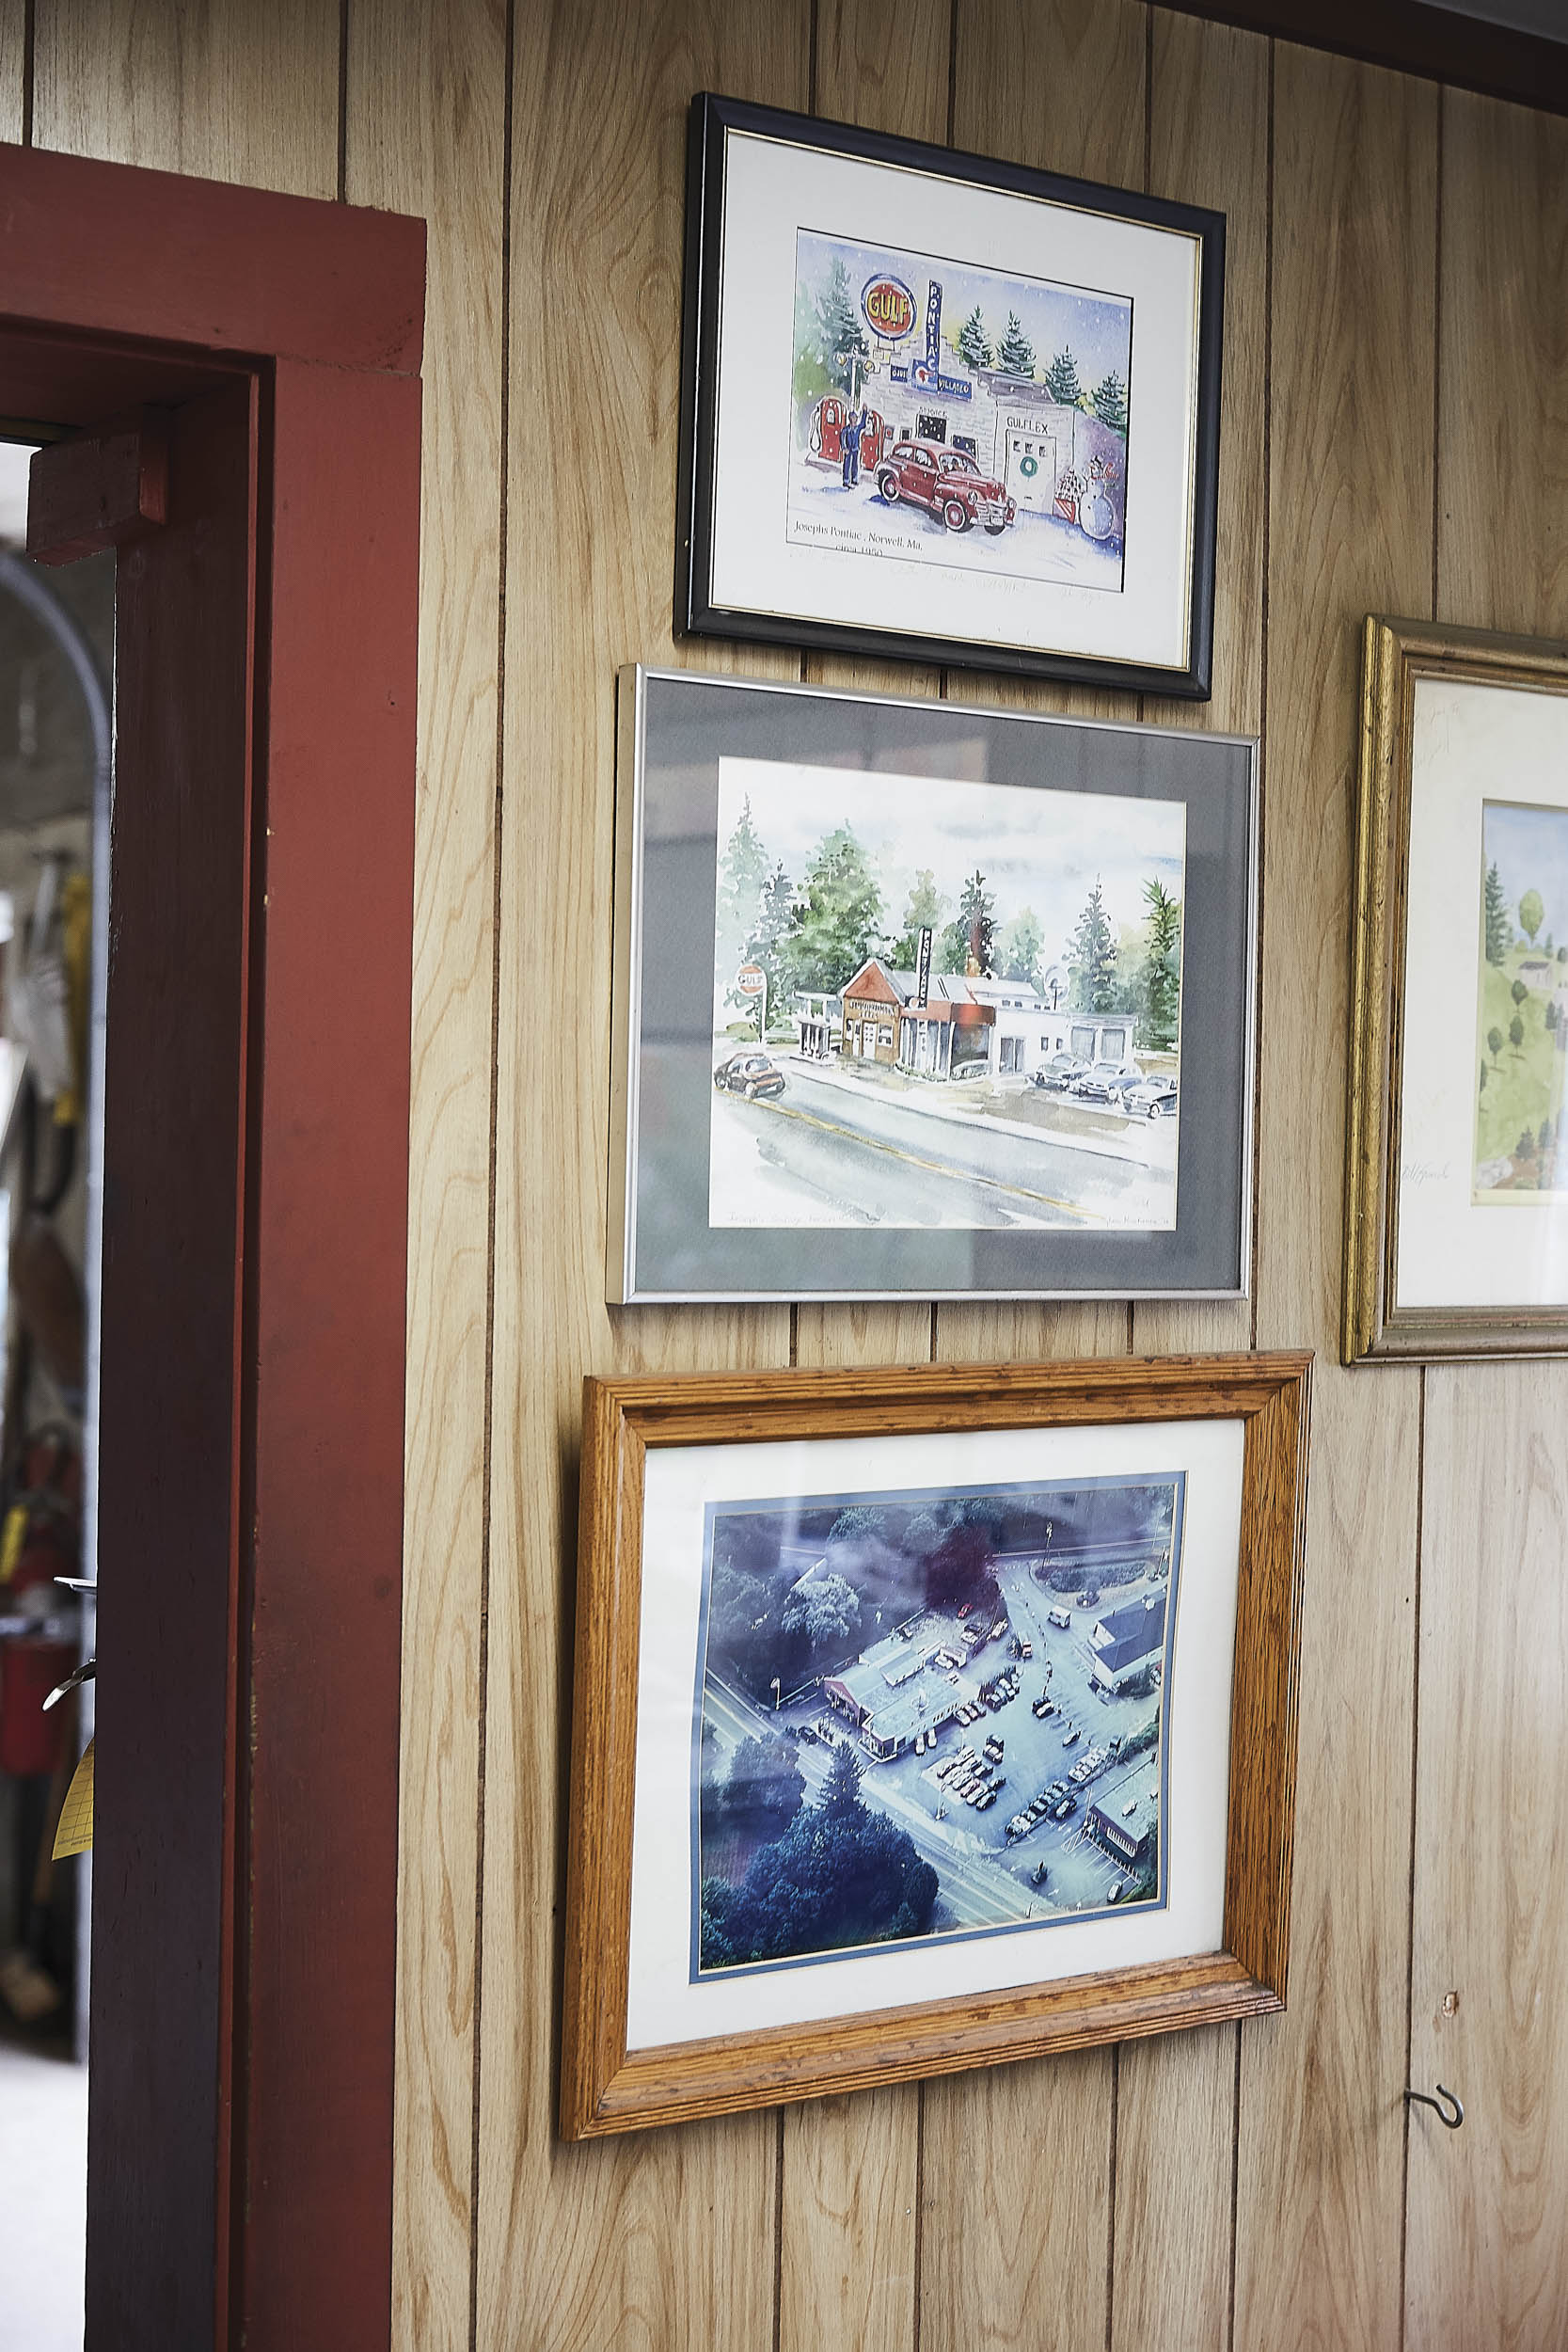 Photos and paintings of the dealership hang on a wall in the small office, reminders of Joseph's long history.